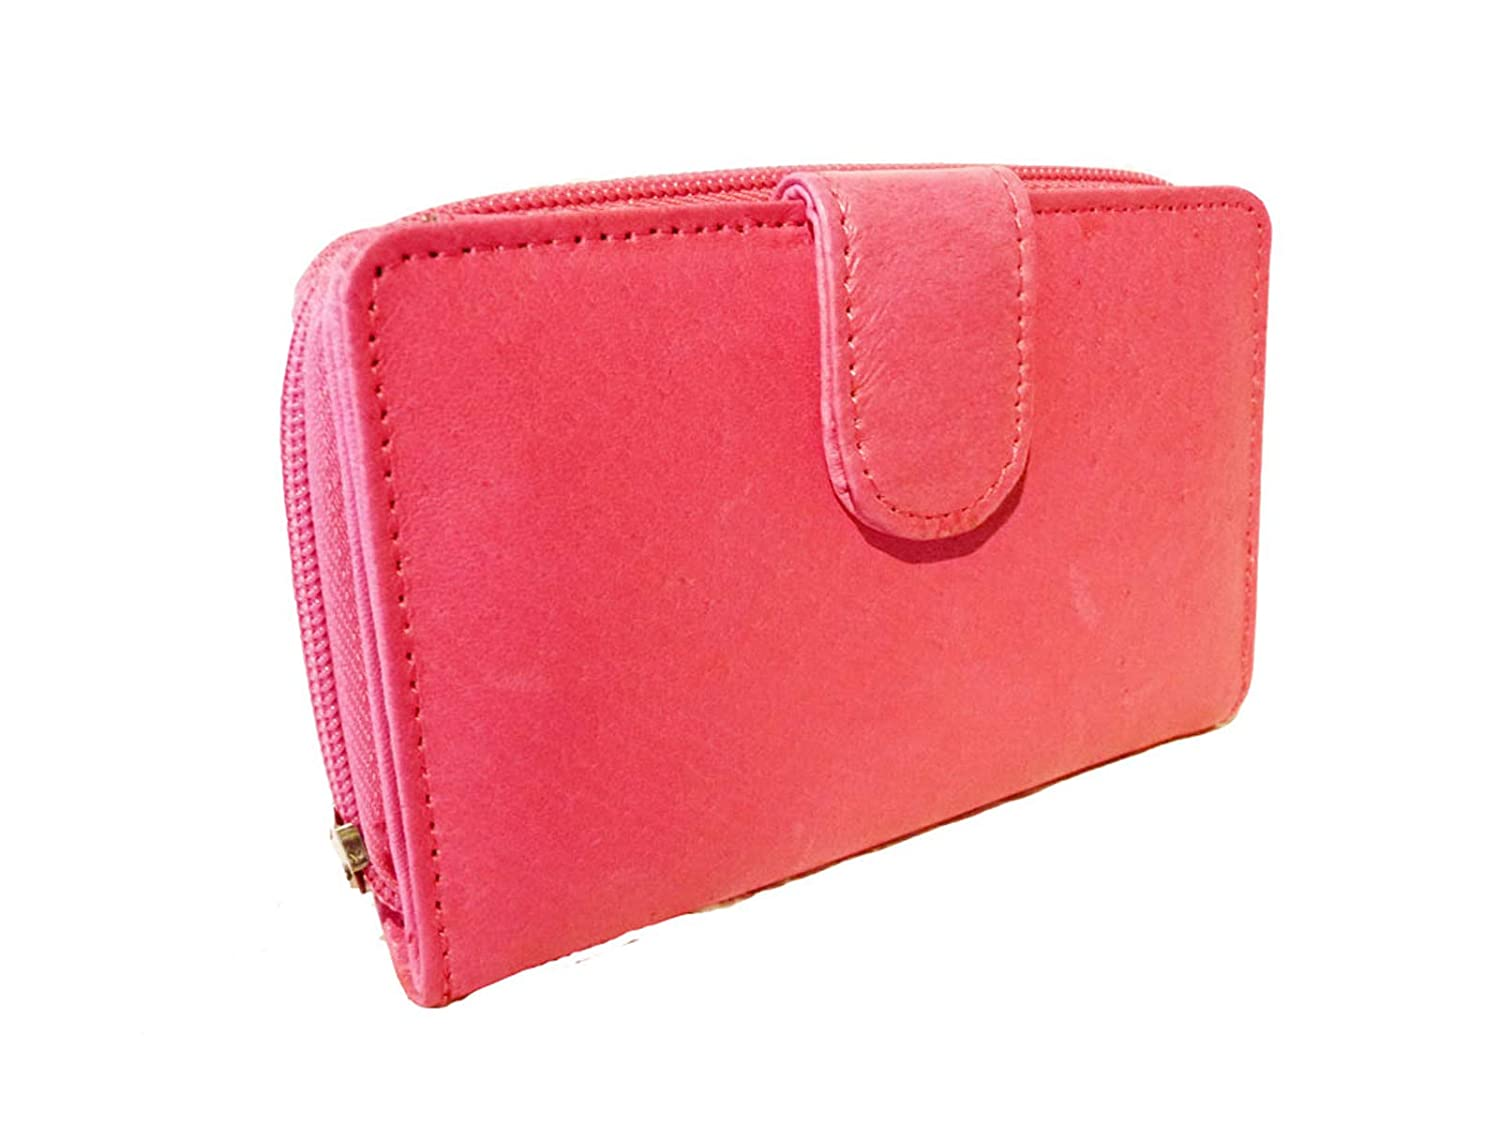 6 Credit Card Spaces Pink Ladies Small Pink Leather Purse Soft Real Leather Ladies Coin Purses Measurements 12 x 2.5 x 9 cm Size Quenchy London 033P 3 Purse Sections